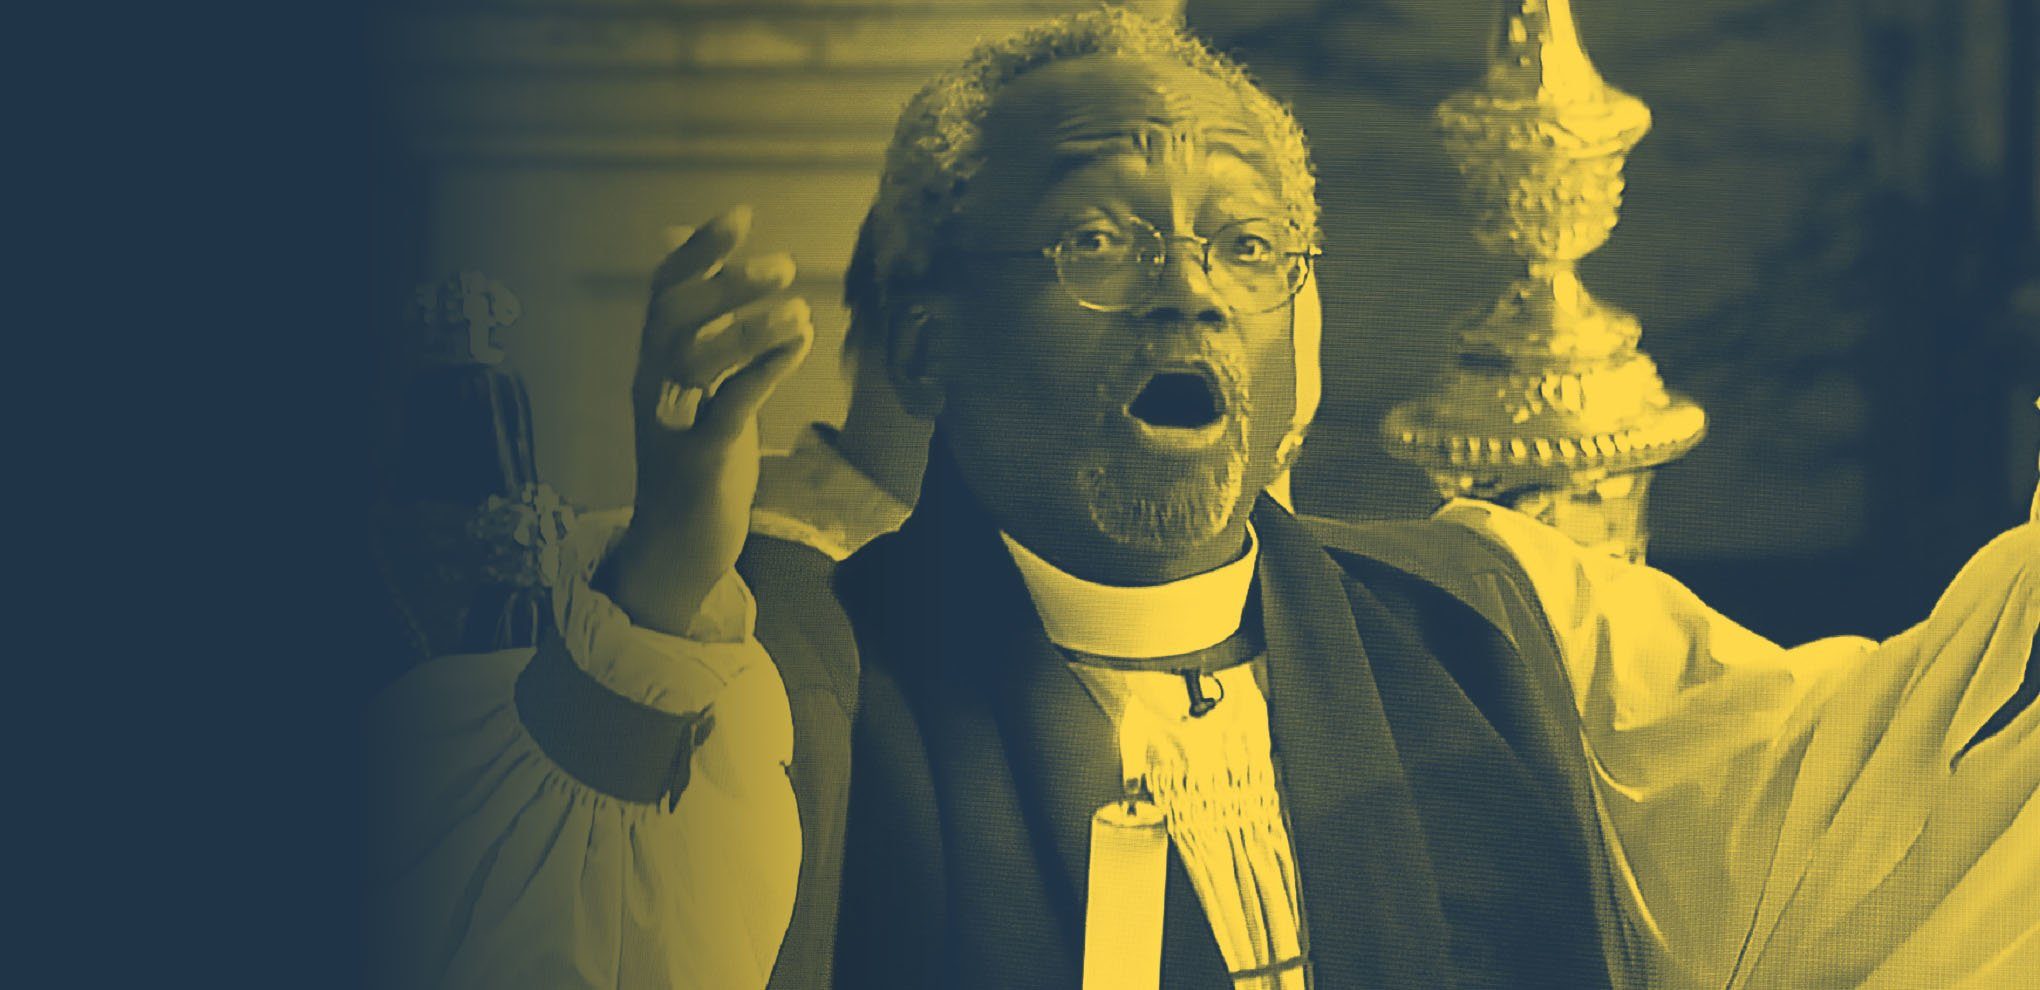 Simon Perfect argues that Bishop Curry's subversion of England's civil religion raises big questions about the direction of the Church.